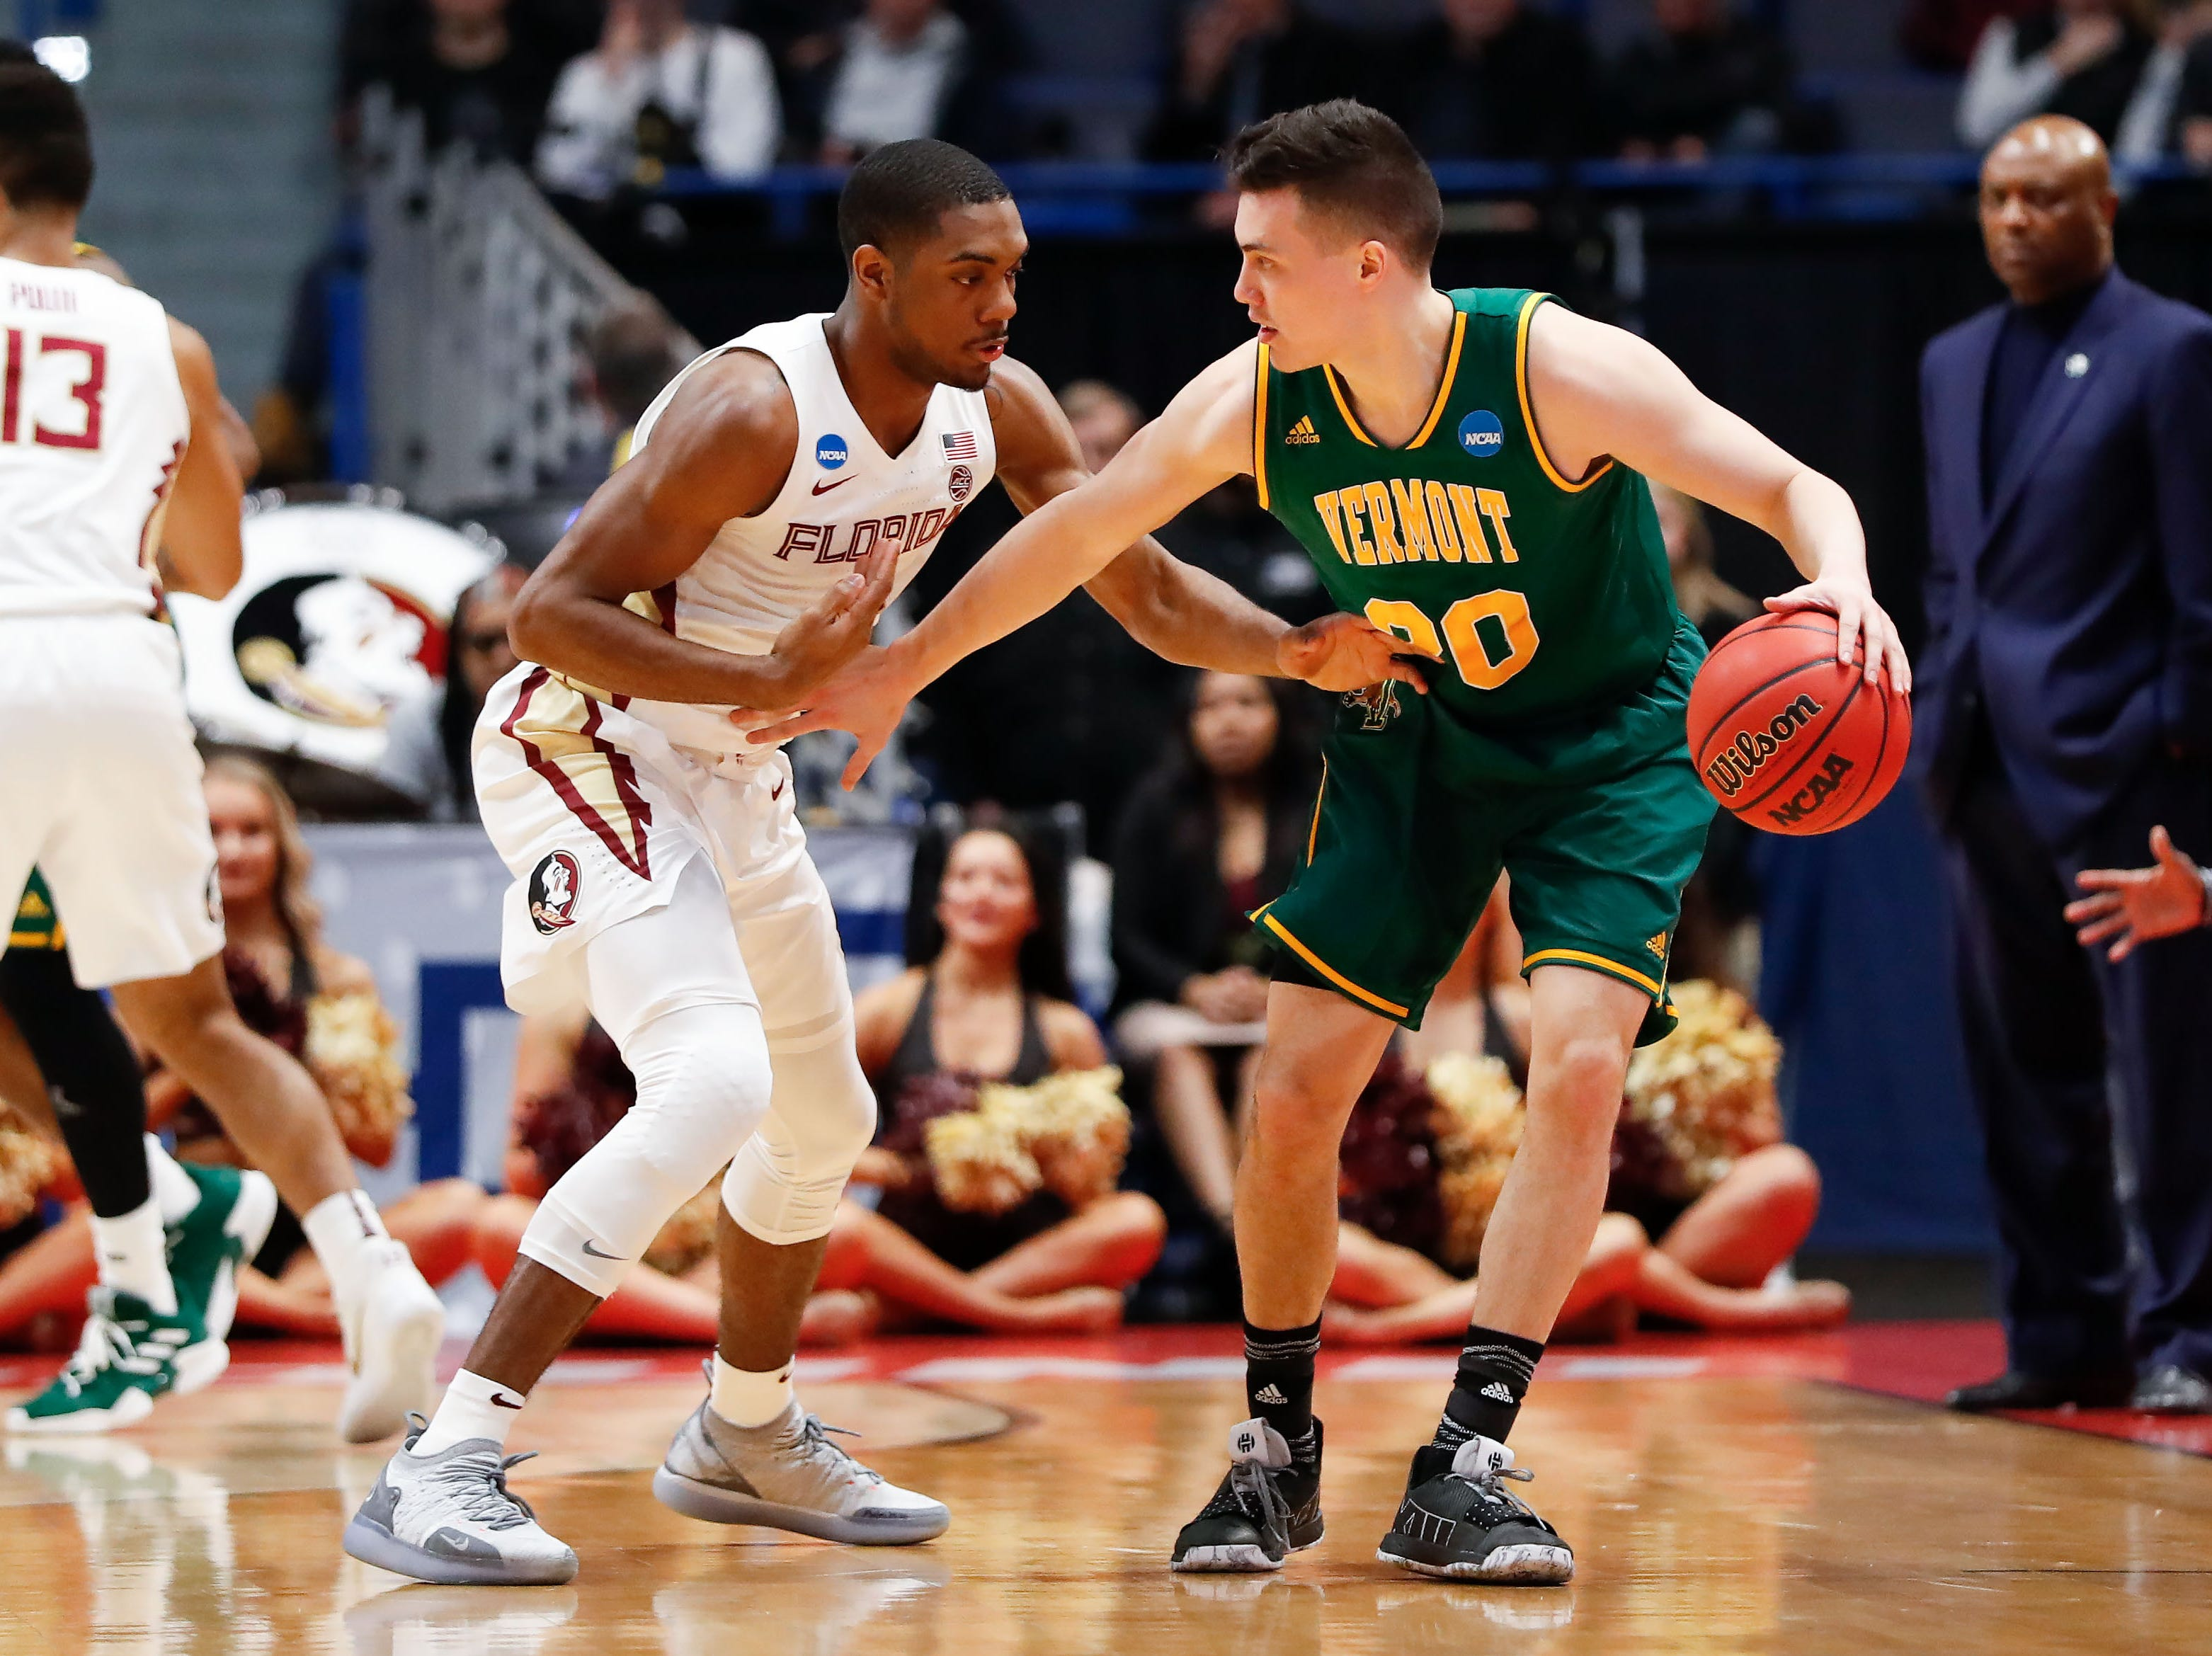 Mar 21, 2019; Hartford, CT, USA; Vermont Catamounts guard Ernie Duncan (20) controls the ball in front of Florida State Seminoles guard Trent Forrest (3) during the first half of a game in the first round of the 2019 NCAA Tournament at XL Center. Mandatory Credit: David Butler II-USA TODAY Sports